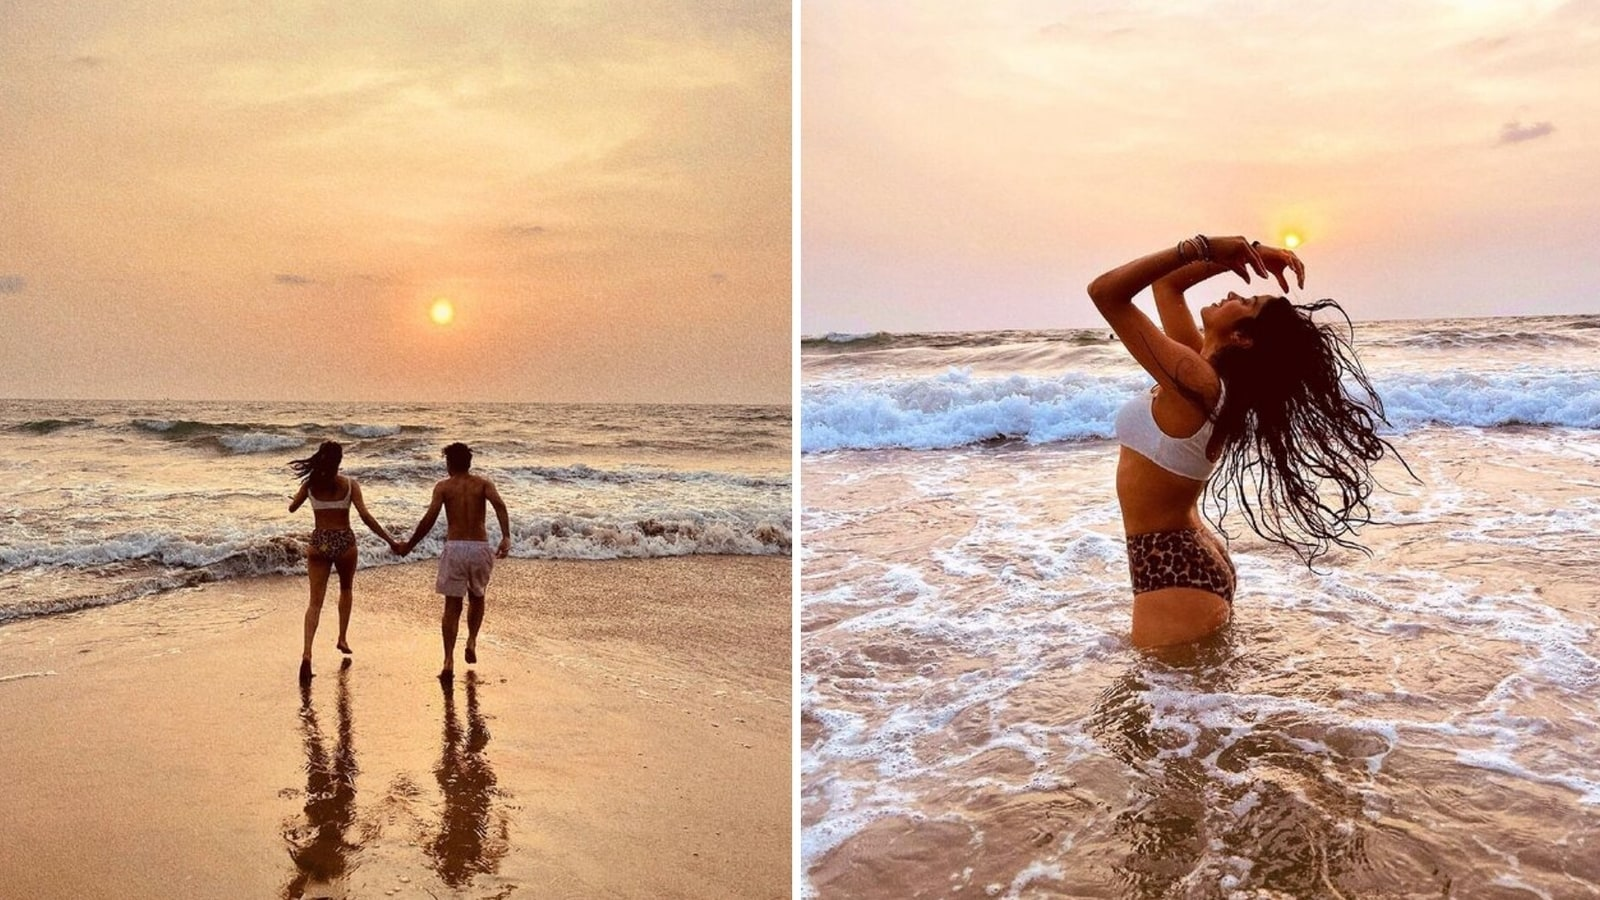 Janhvi Kapoor runs off into the sunset with friend, takes a dip in the sea and poses on the beach. See photos | Bollywood - Hindustan Times